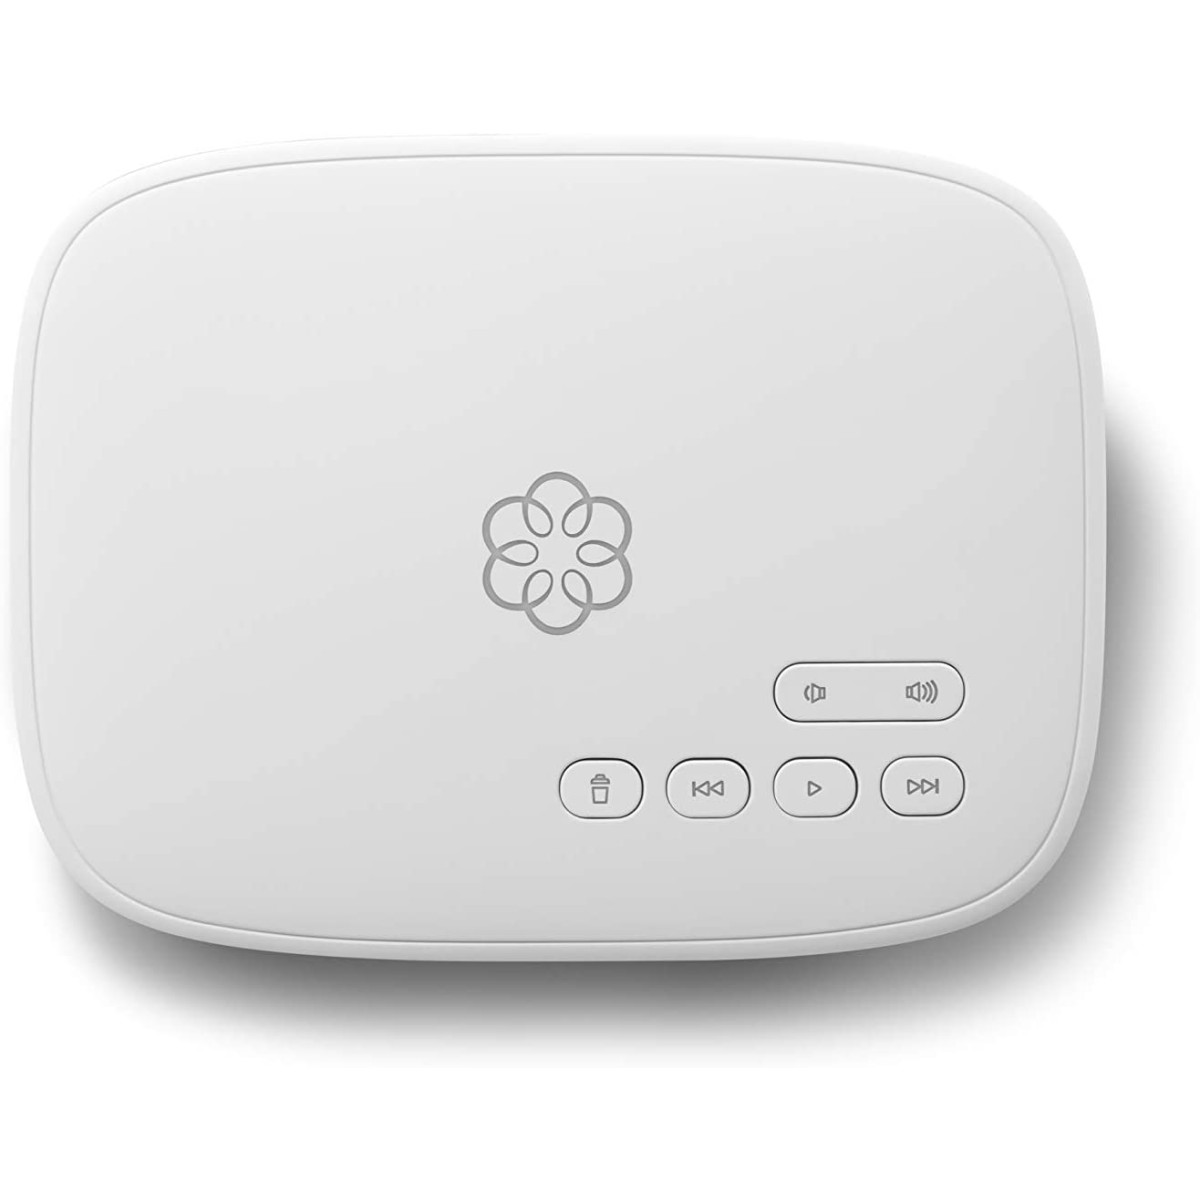 Ooma Telo VoIP Free Home Phone Service. Affordable